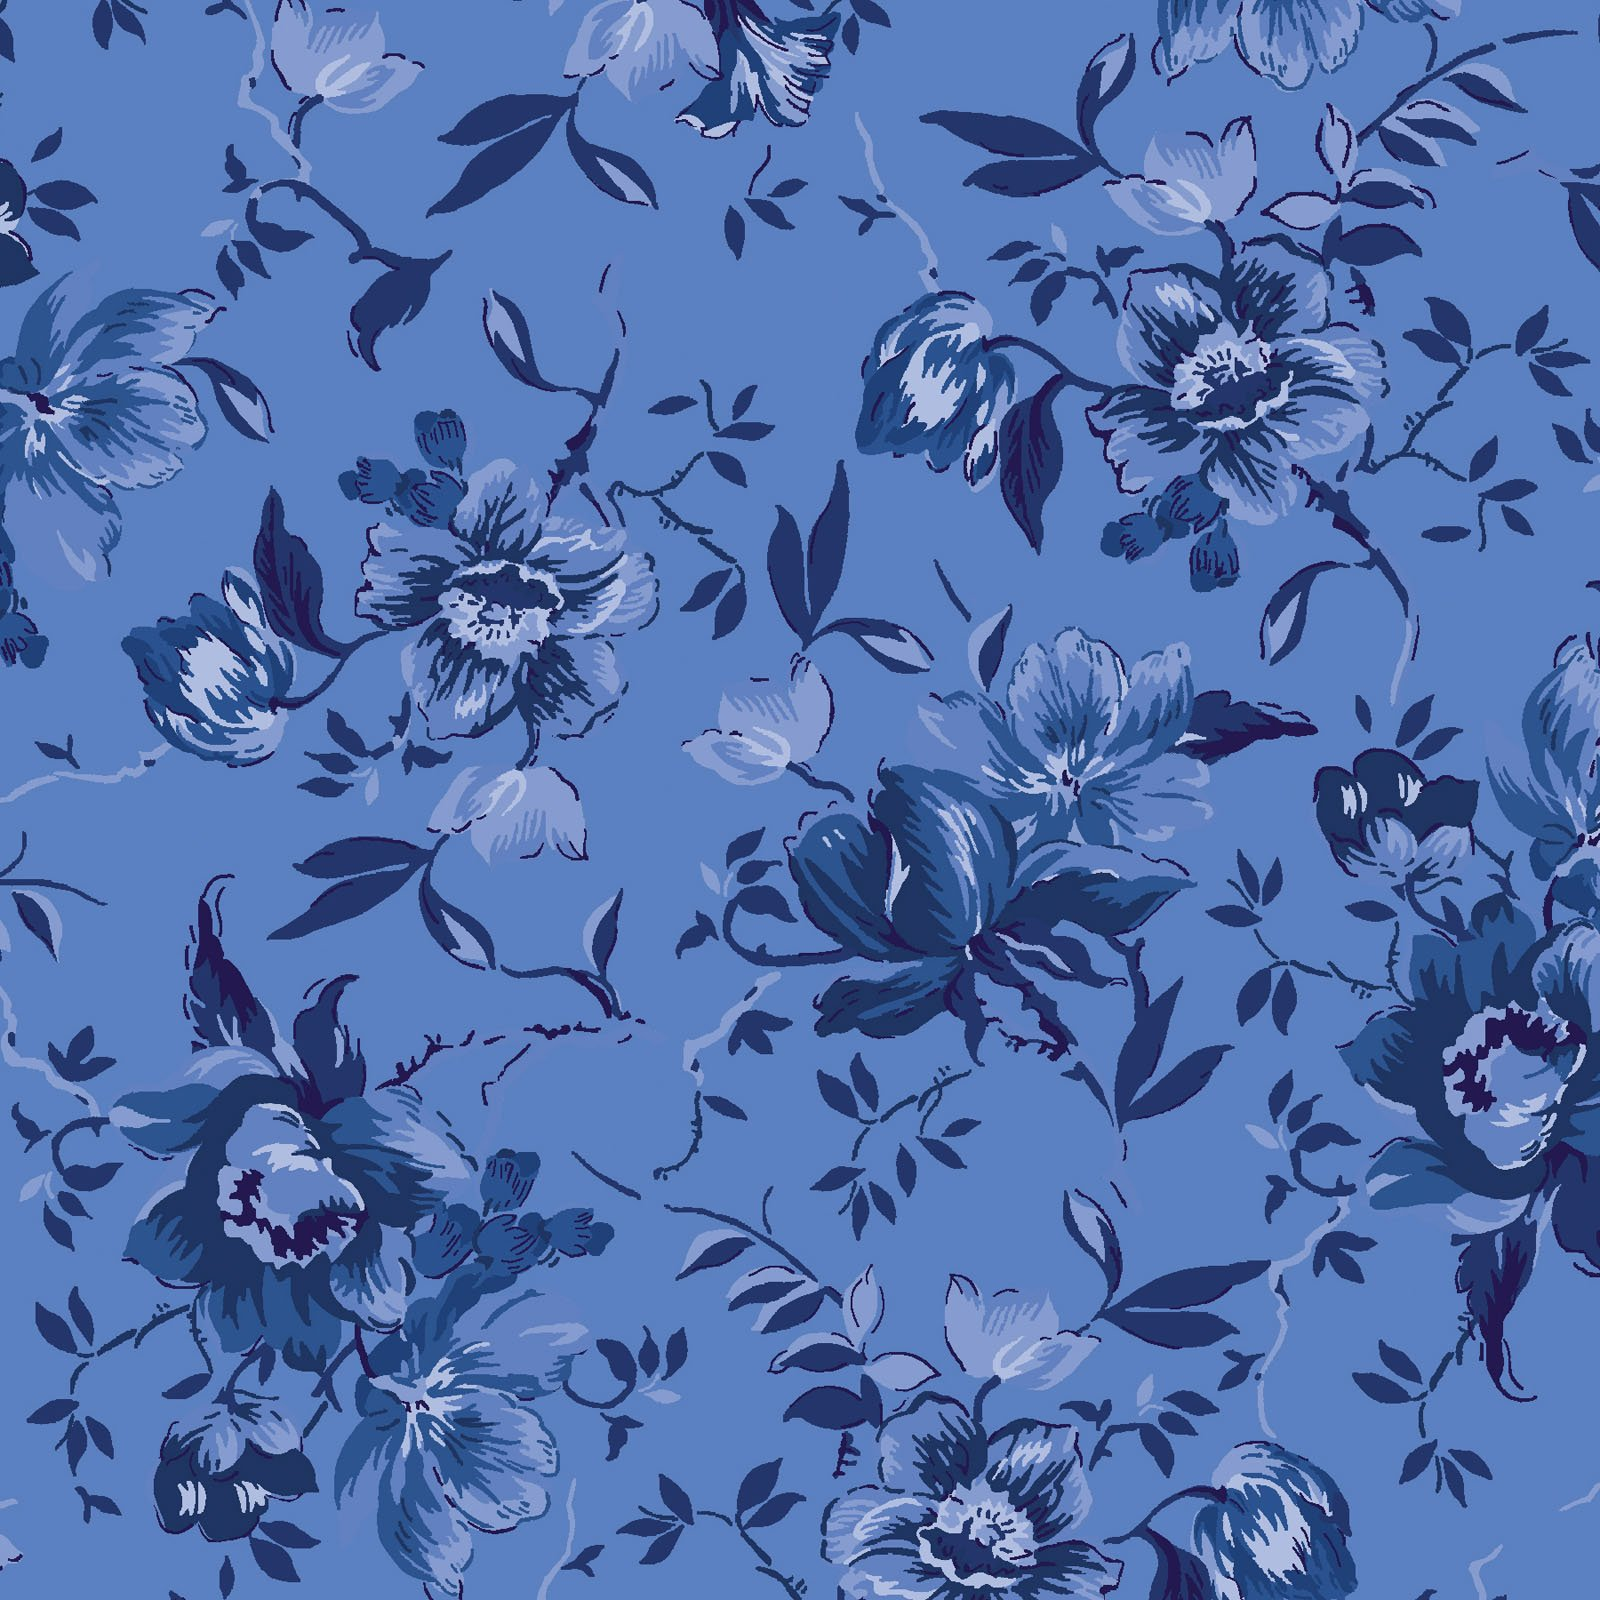 EESC-2503 B - SILVER JUBILEE BY MAYWOOD STUDIO MEDIUM FLORAL BLUE - AVAILABLE TO ORDER